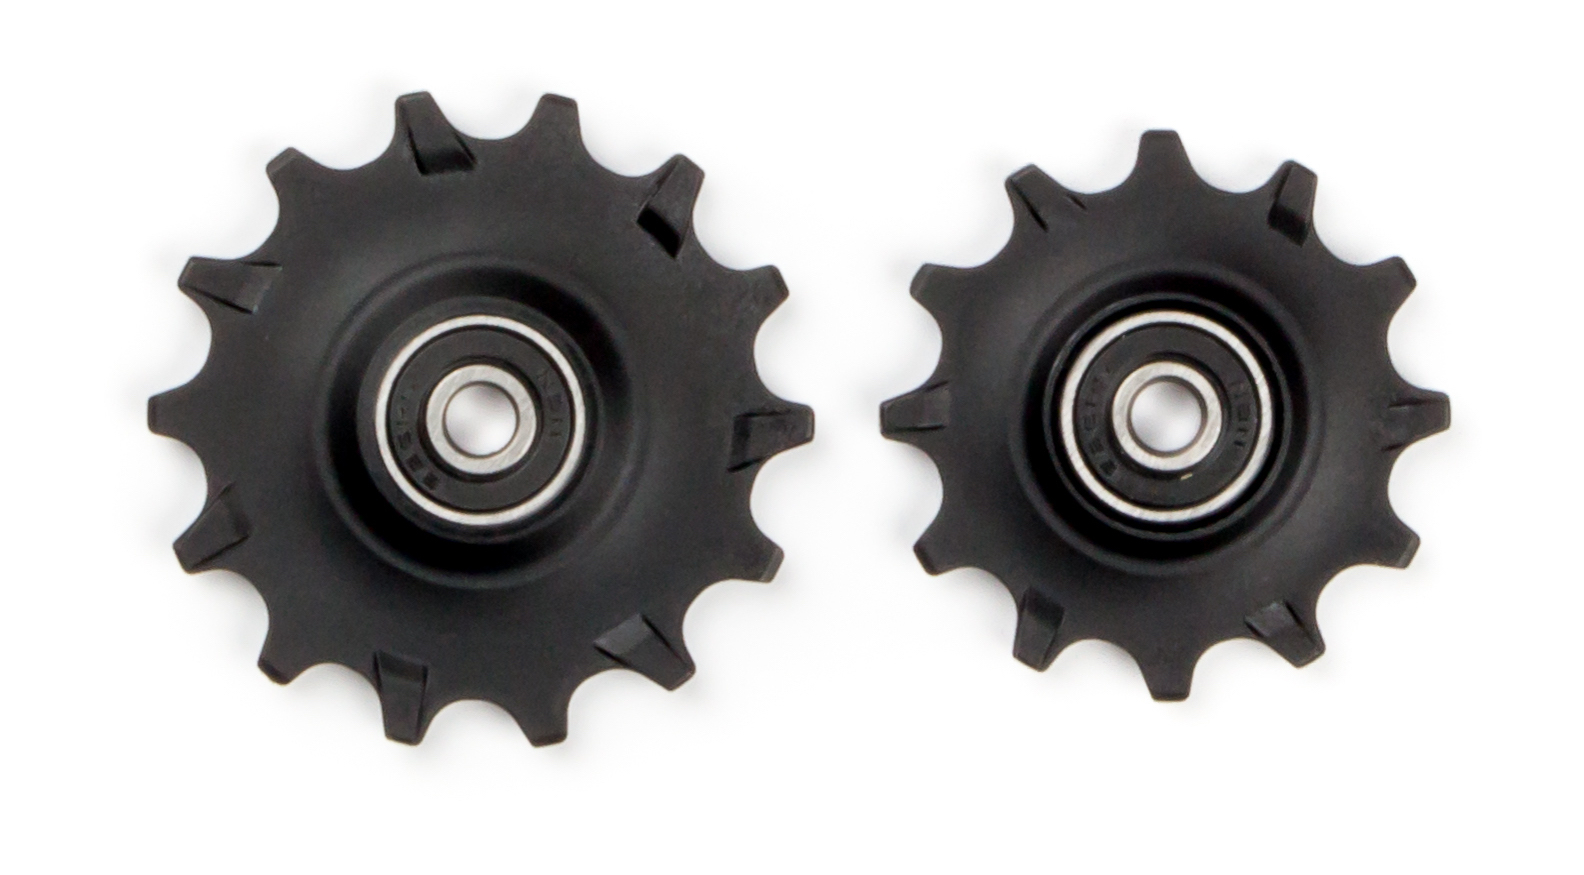 Pulleyhjul Elvedes SRAM Eagle 12T/14T - 12 speed - ELCP2017102 | Pulley wheels